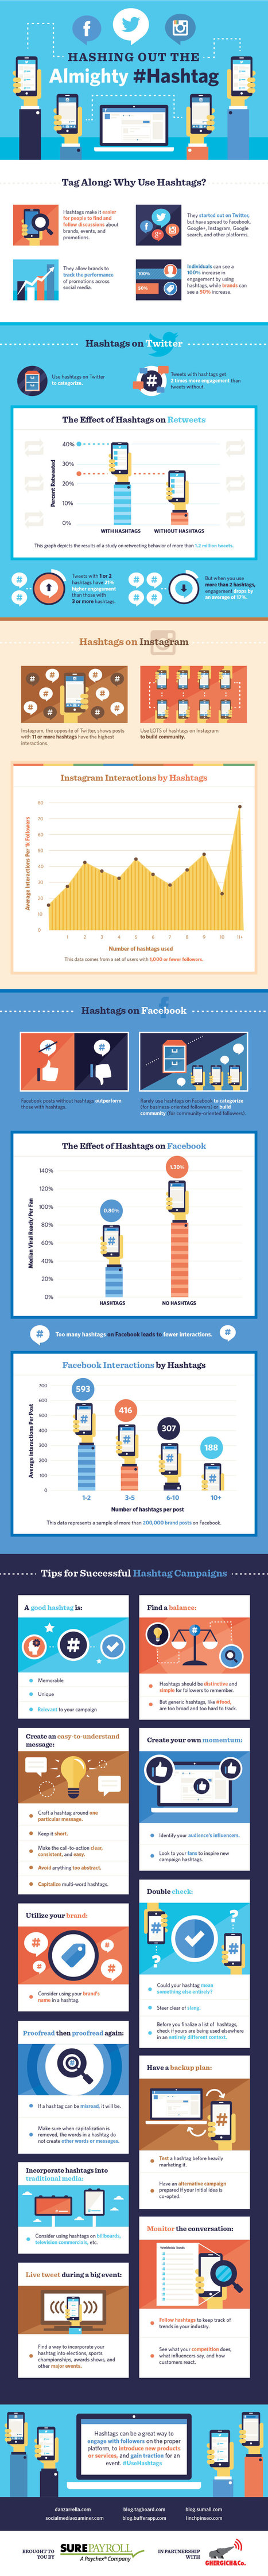 #SocialMedia Marketing: How To Use Hashtags On Facebook, Twitter And Instagram - #infographic | The MarTech Digest | Scoop.it